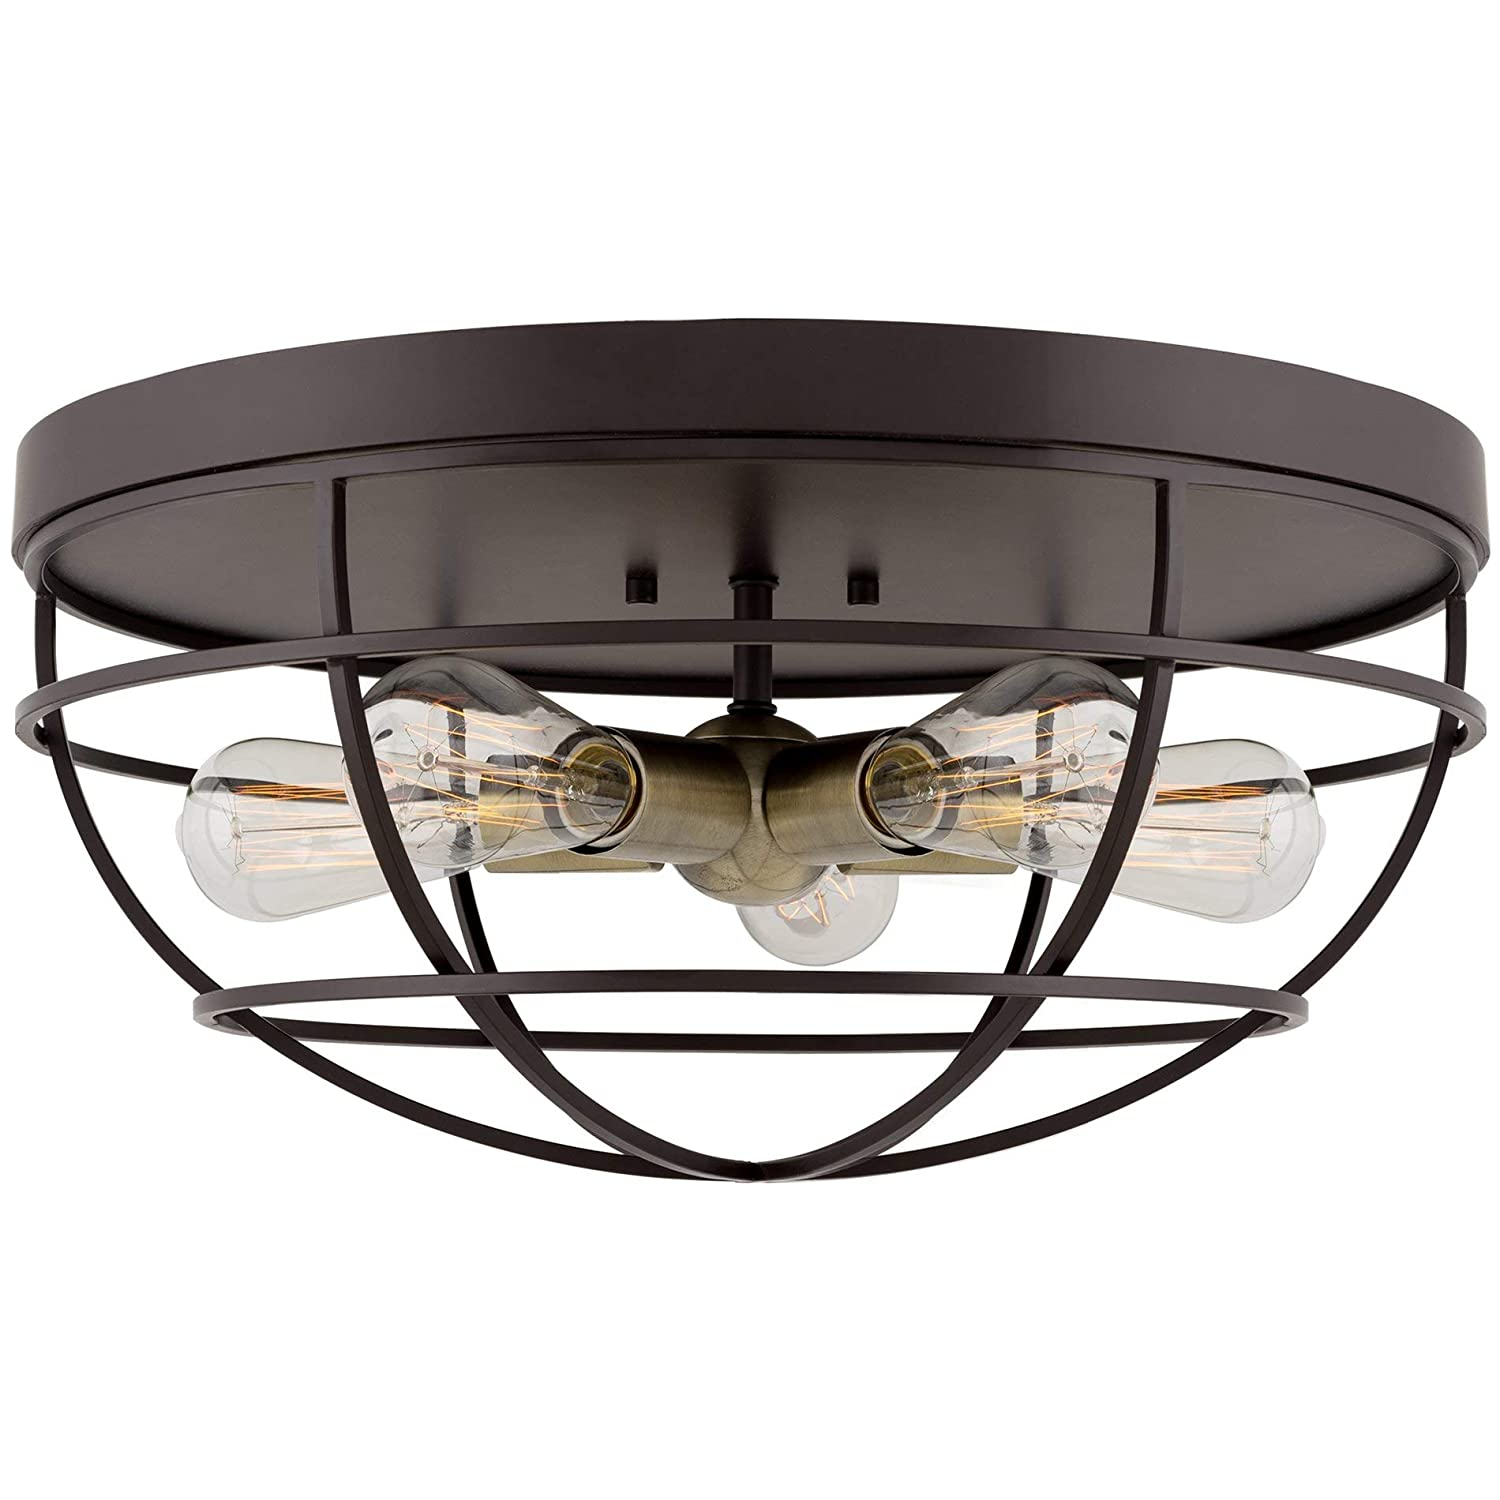 """Kira Home Gage 18"""" Industrial Farmhouse 5-Light Cage Flush Mount Ceiling Light, Antique Brass Sockets, Oil Rubbed Bronze Finish"""